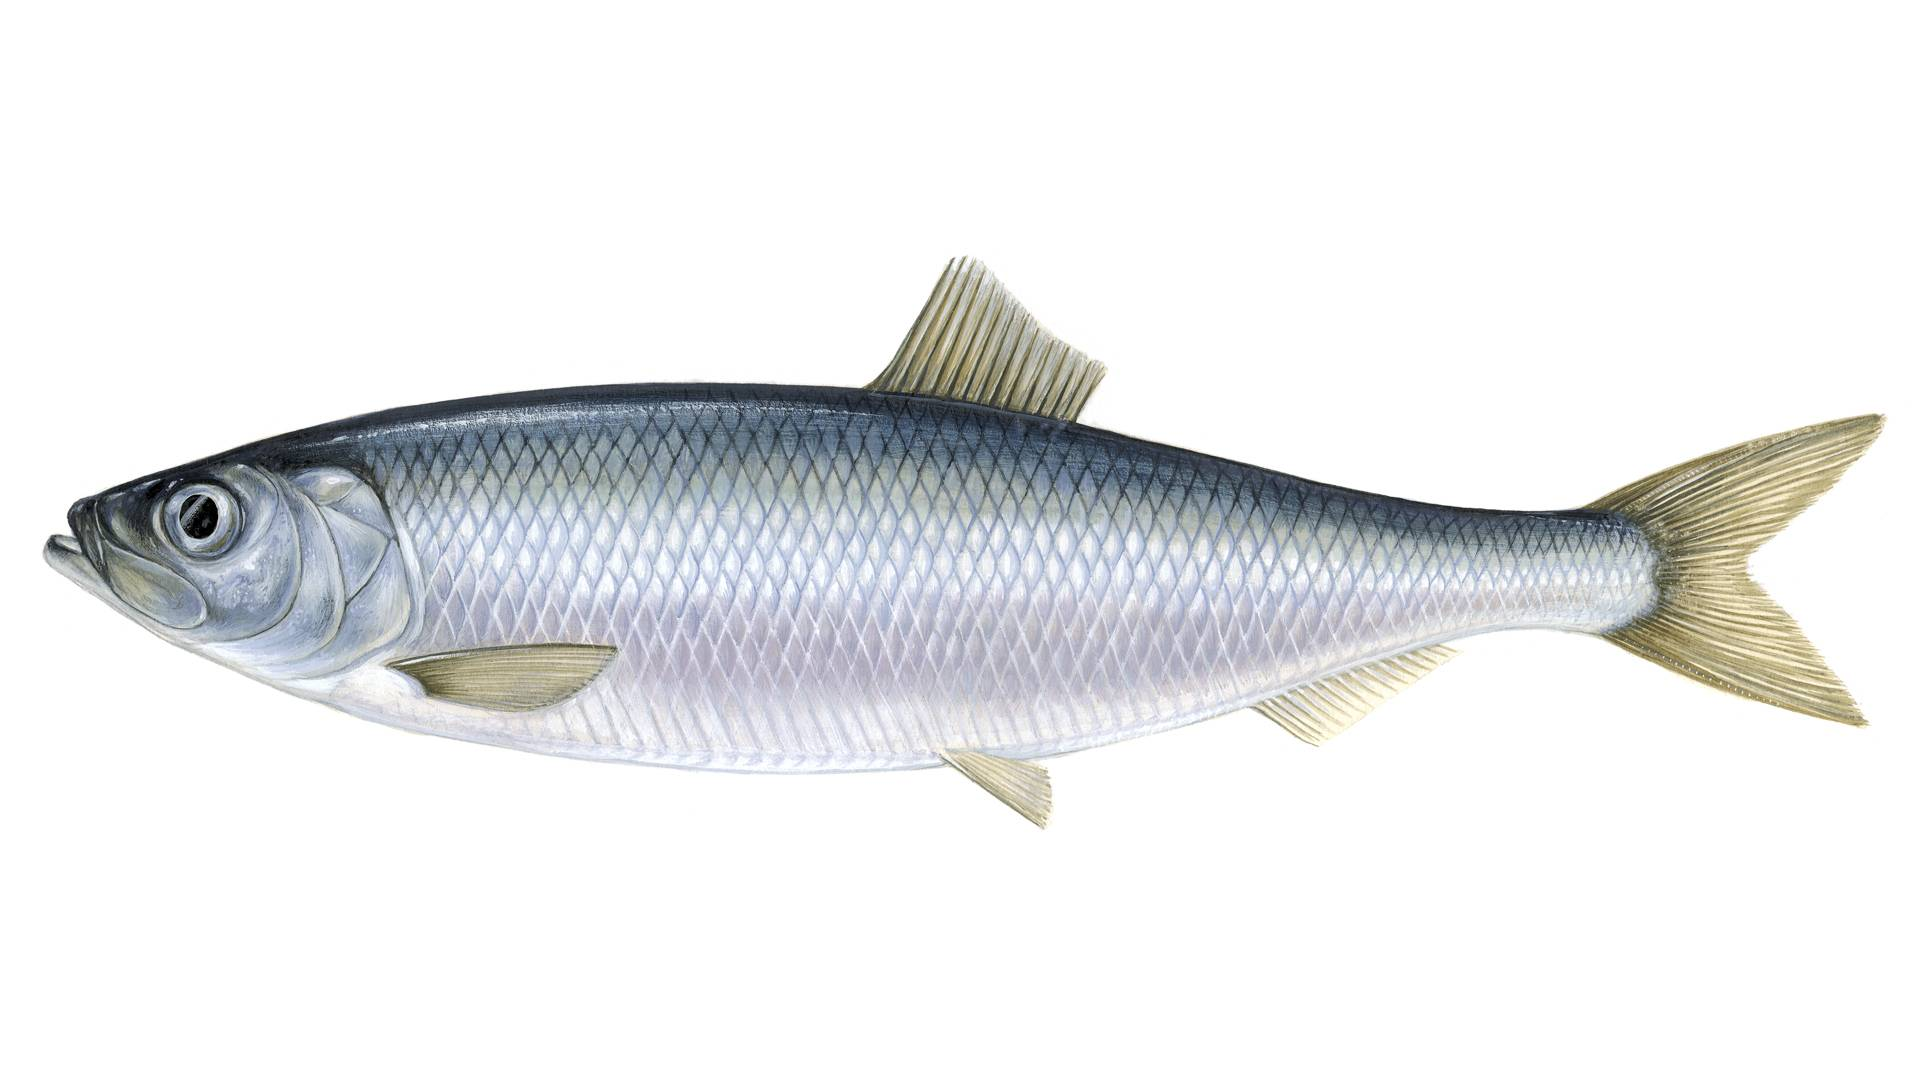 A herring fish